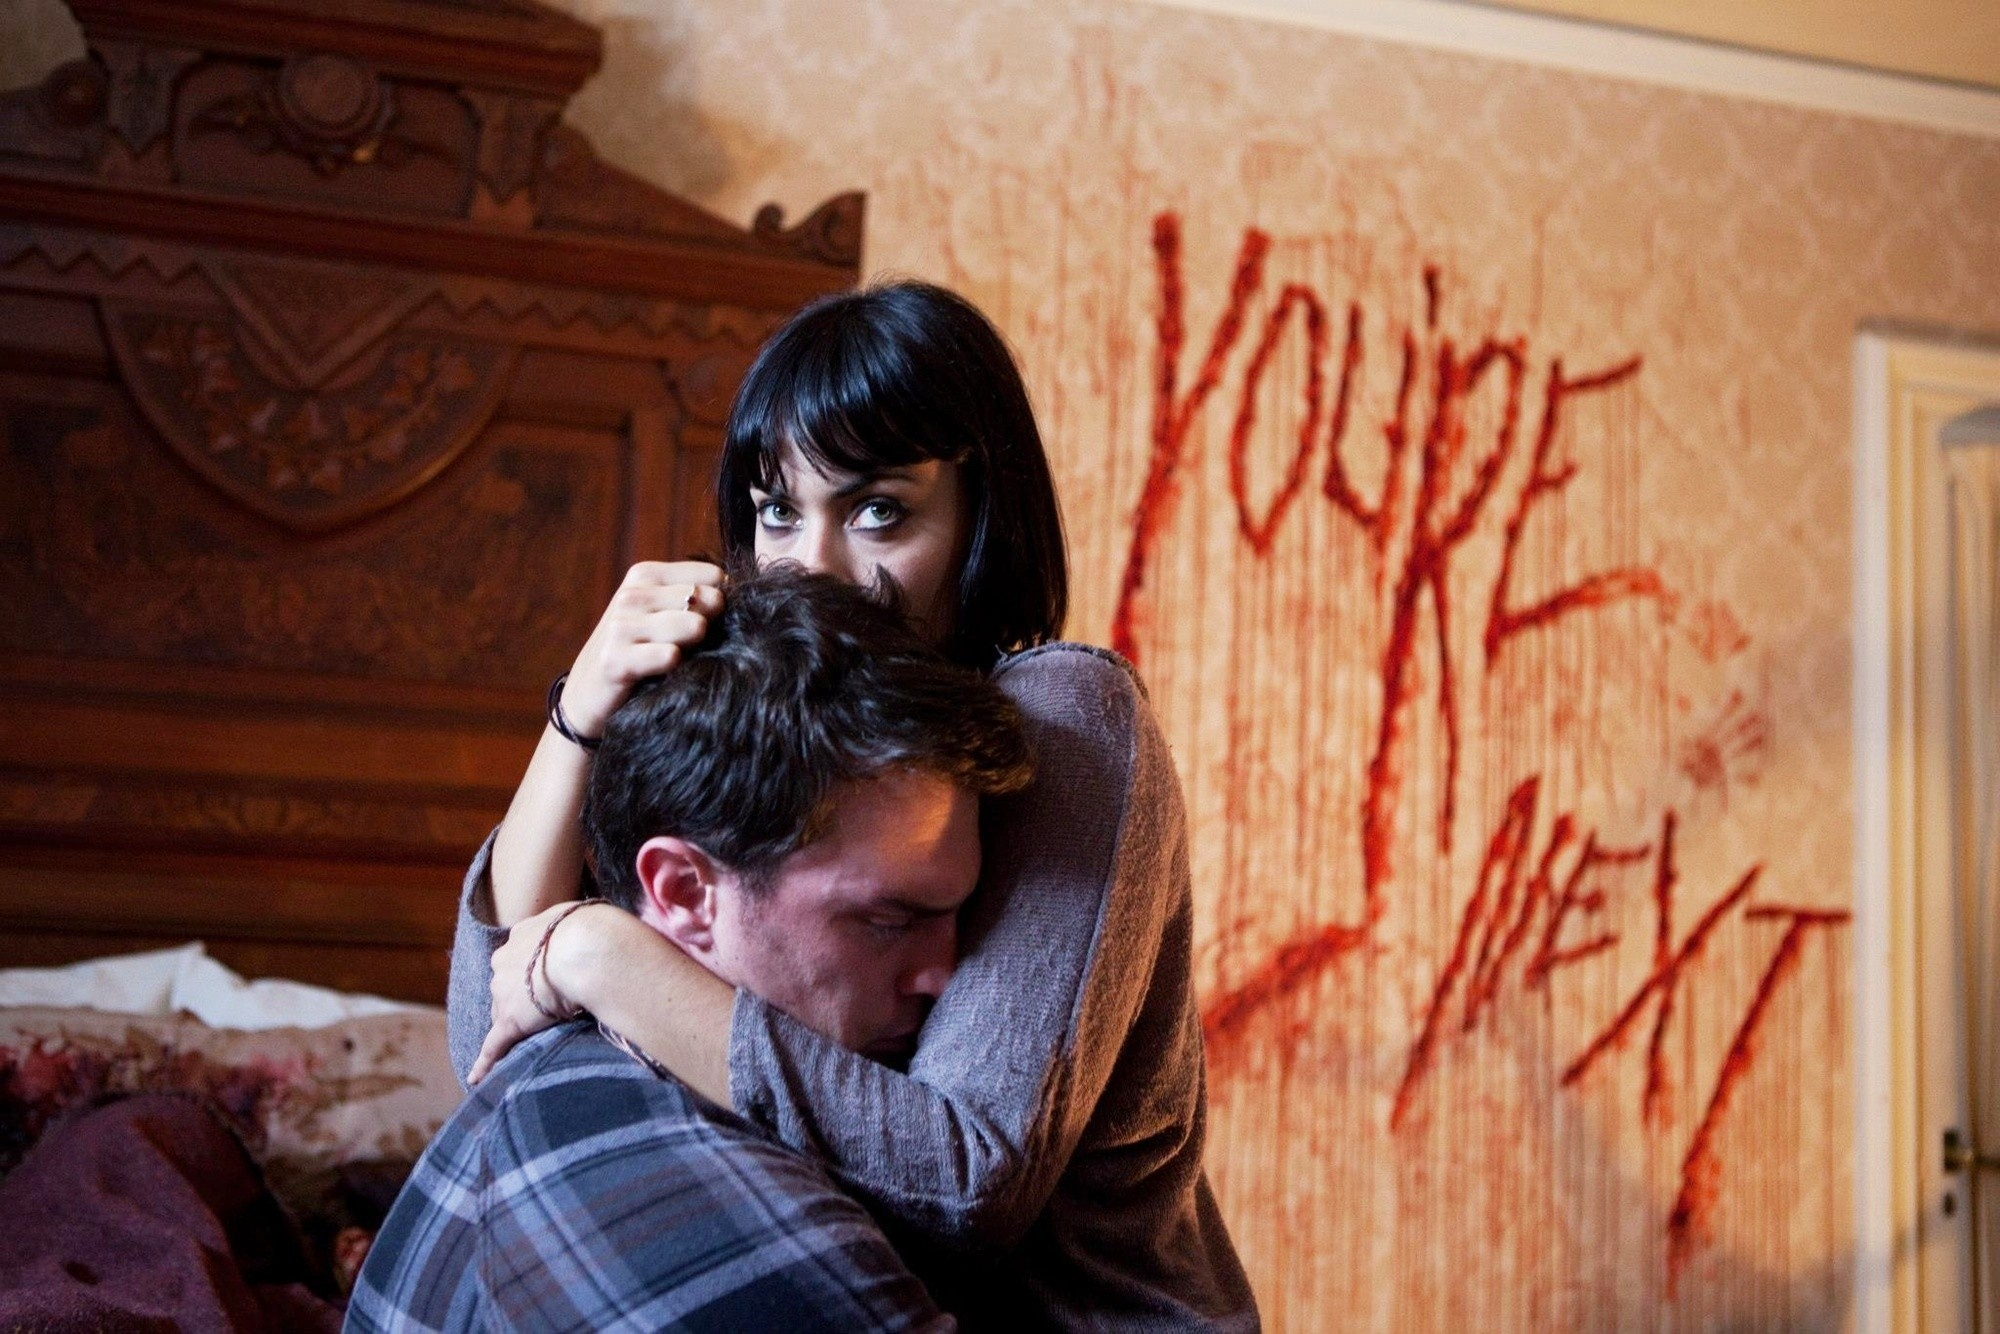 You're Next - La morte